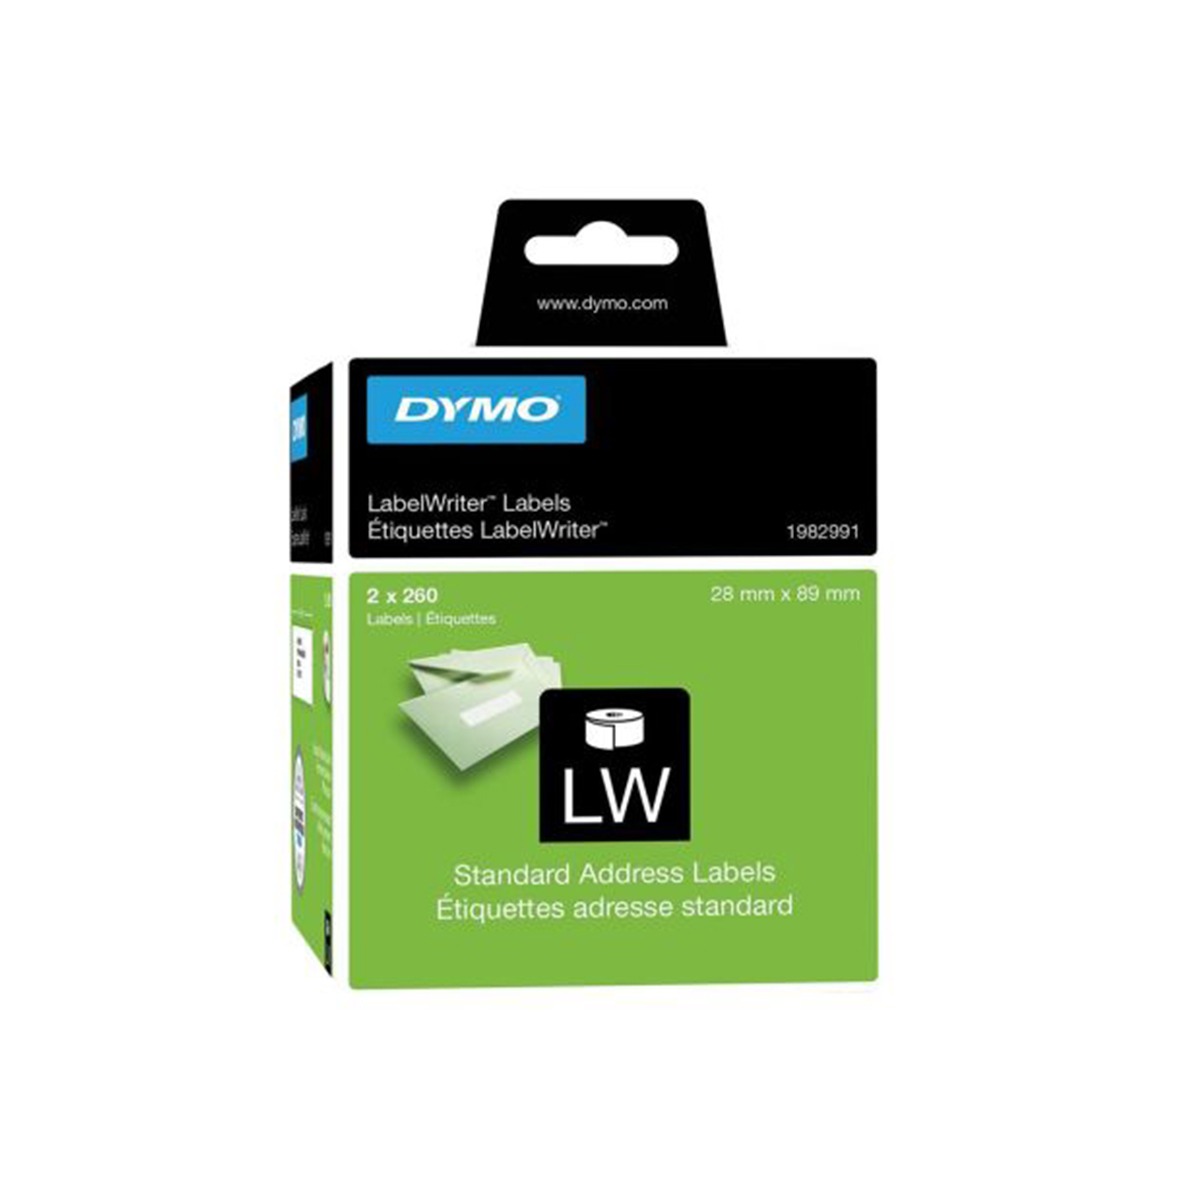 Dymo 1982991 LW Address Labels 28 x 89mm 2 Rolls of 260 Labels